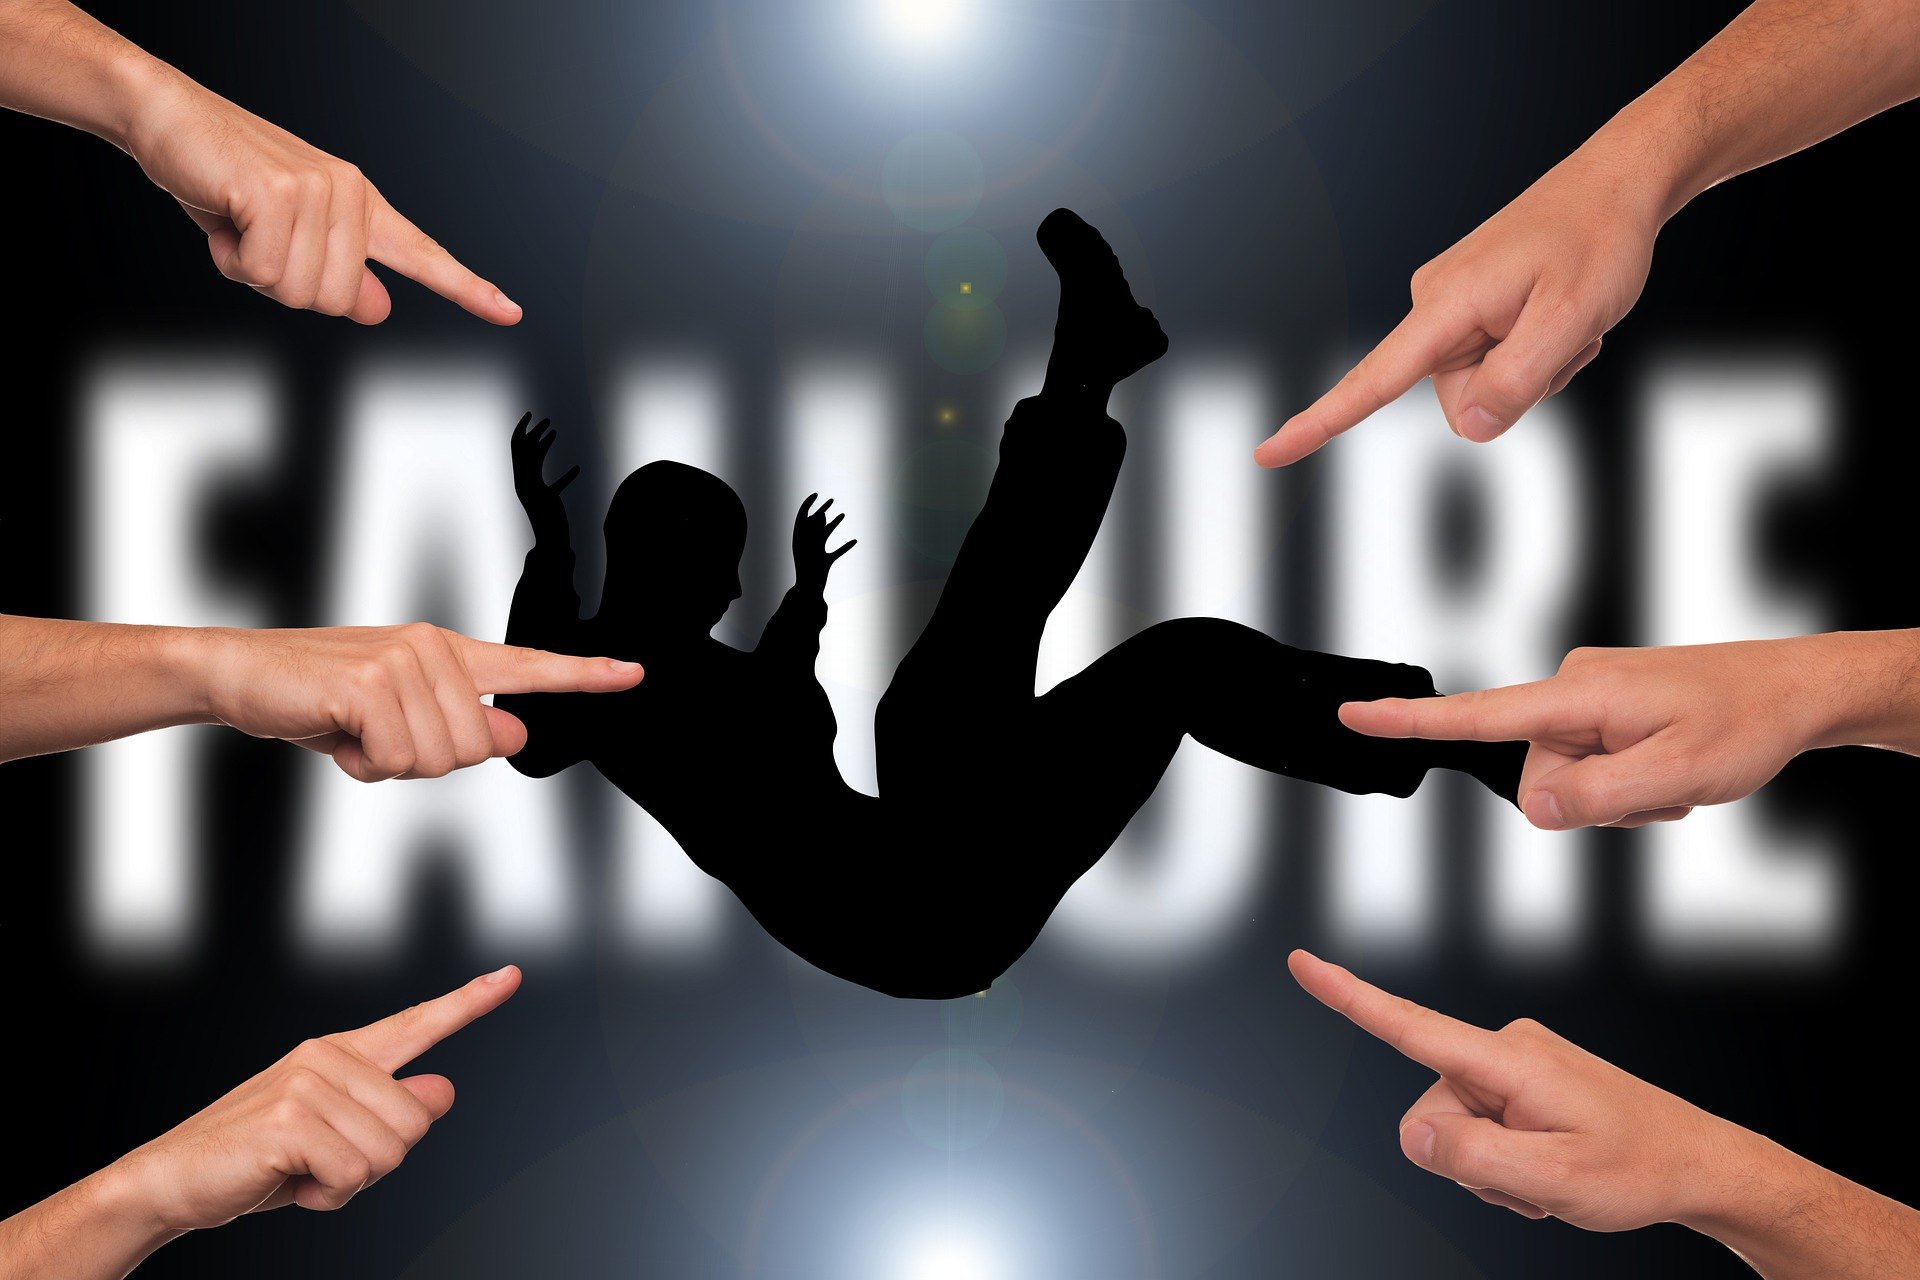 This Conundrum is about someone who trips you, tortures you, and comforts you in time of need. The picture is of a person falling and a bunch of fingers pointing indicating failure.